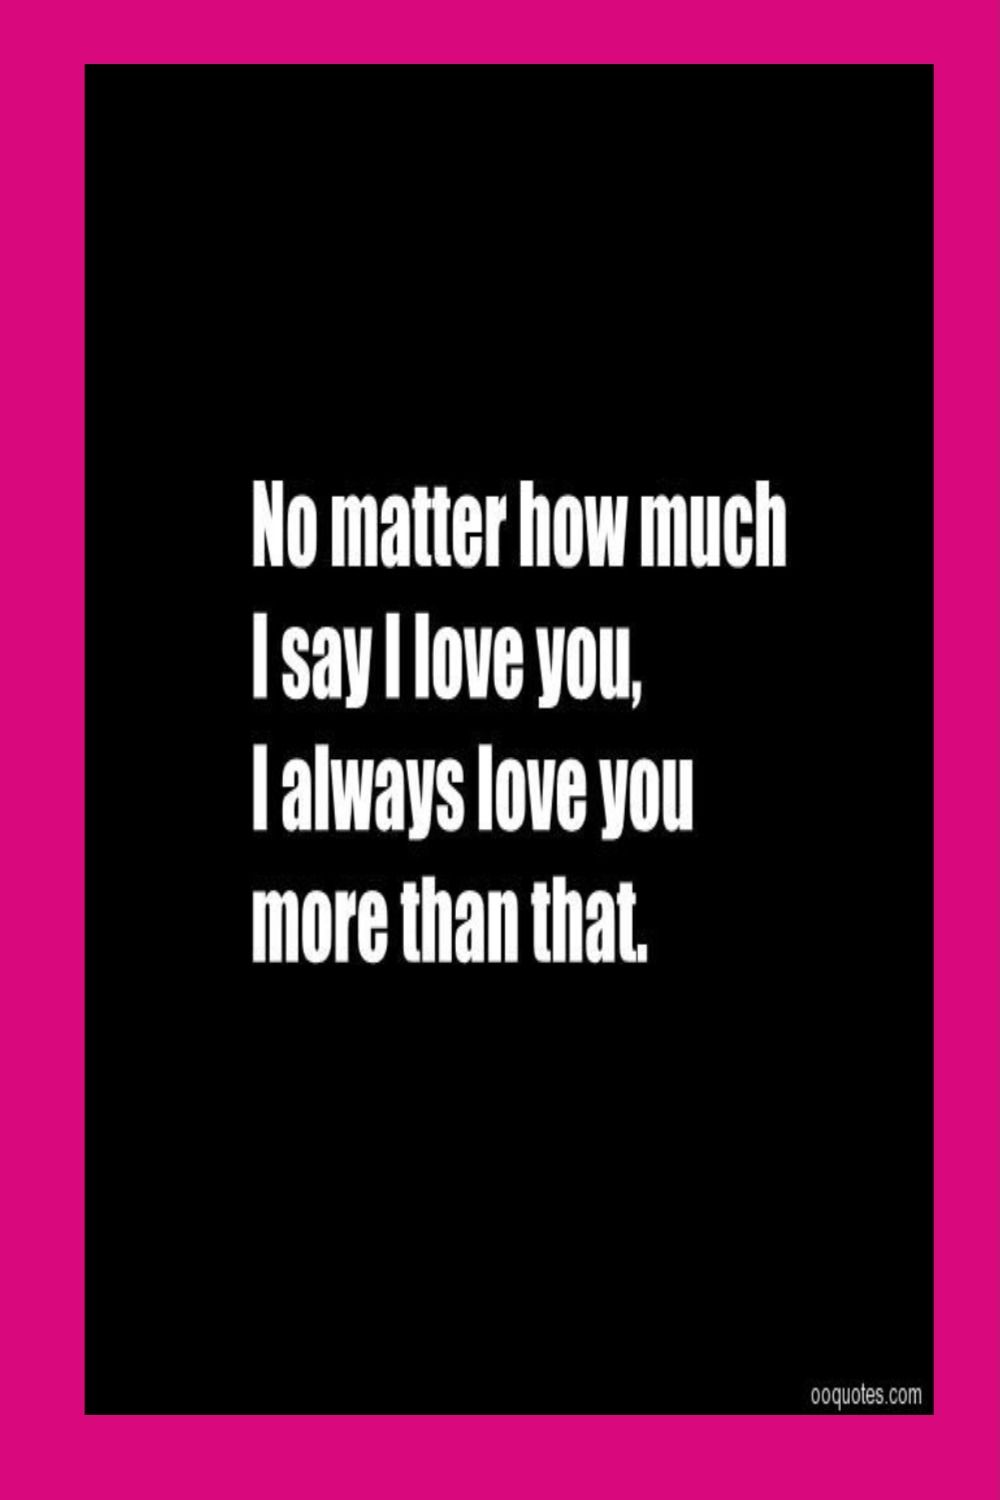 I Love You Truthful Memes Image Result For Cute I Love You Meme For Daughter Love You Meme Romantic Memes For Him Romantic Memes